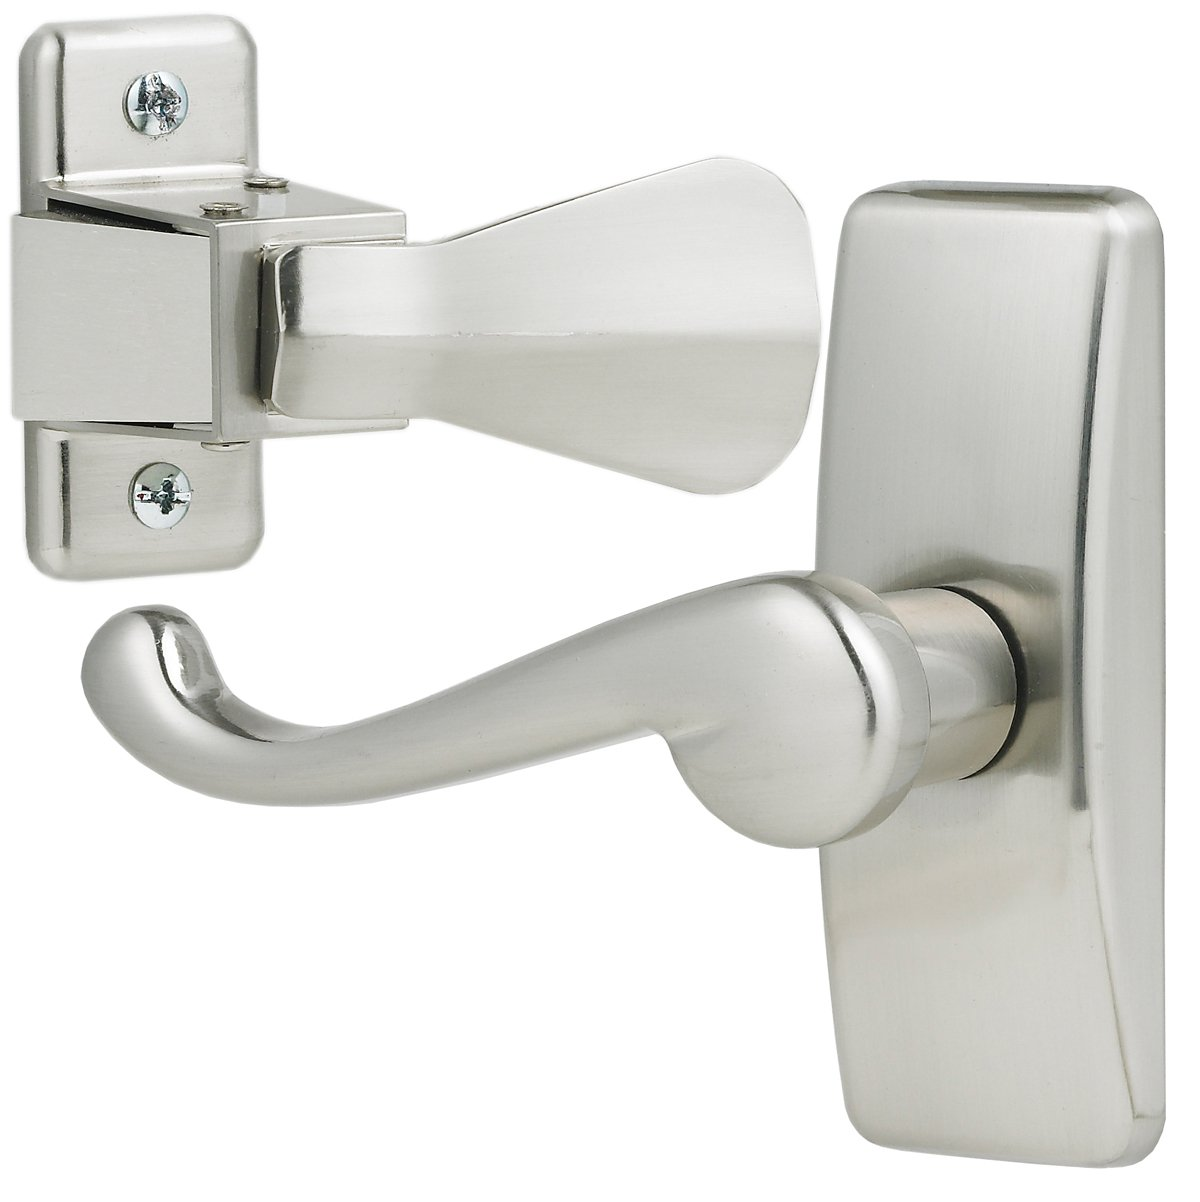 improvement products mortise wright set door nickel serenade home dp satin com style amazon storm handle